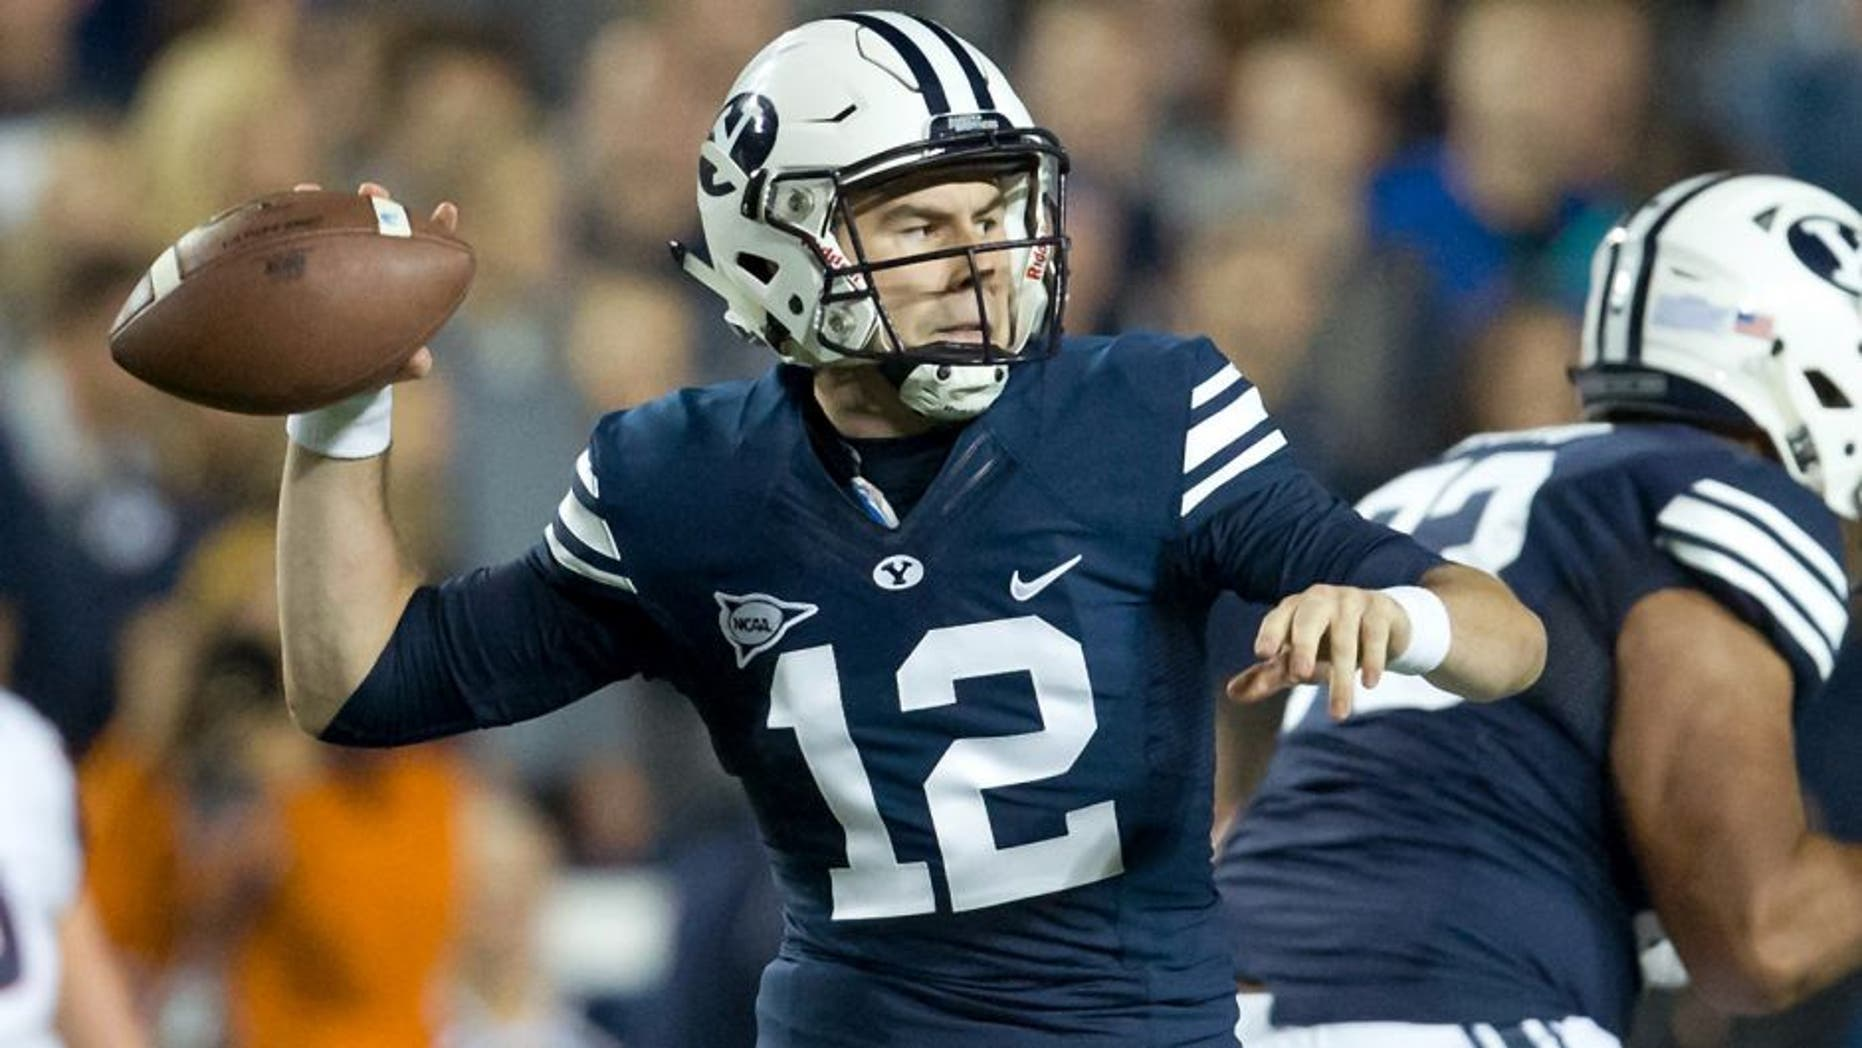 Oct 2, 2015; Provo, UT, USA; Brigham Young Cougars quarterback Tanner Mangum (12) passes the ball during the first quarter against the Connecticut Huskies at Lavell Edwards Stadium. Mandatory Credit: Russ Isabella-USA TODAY Sports